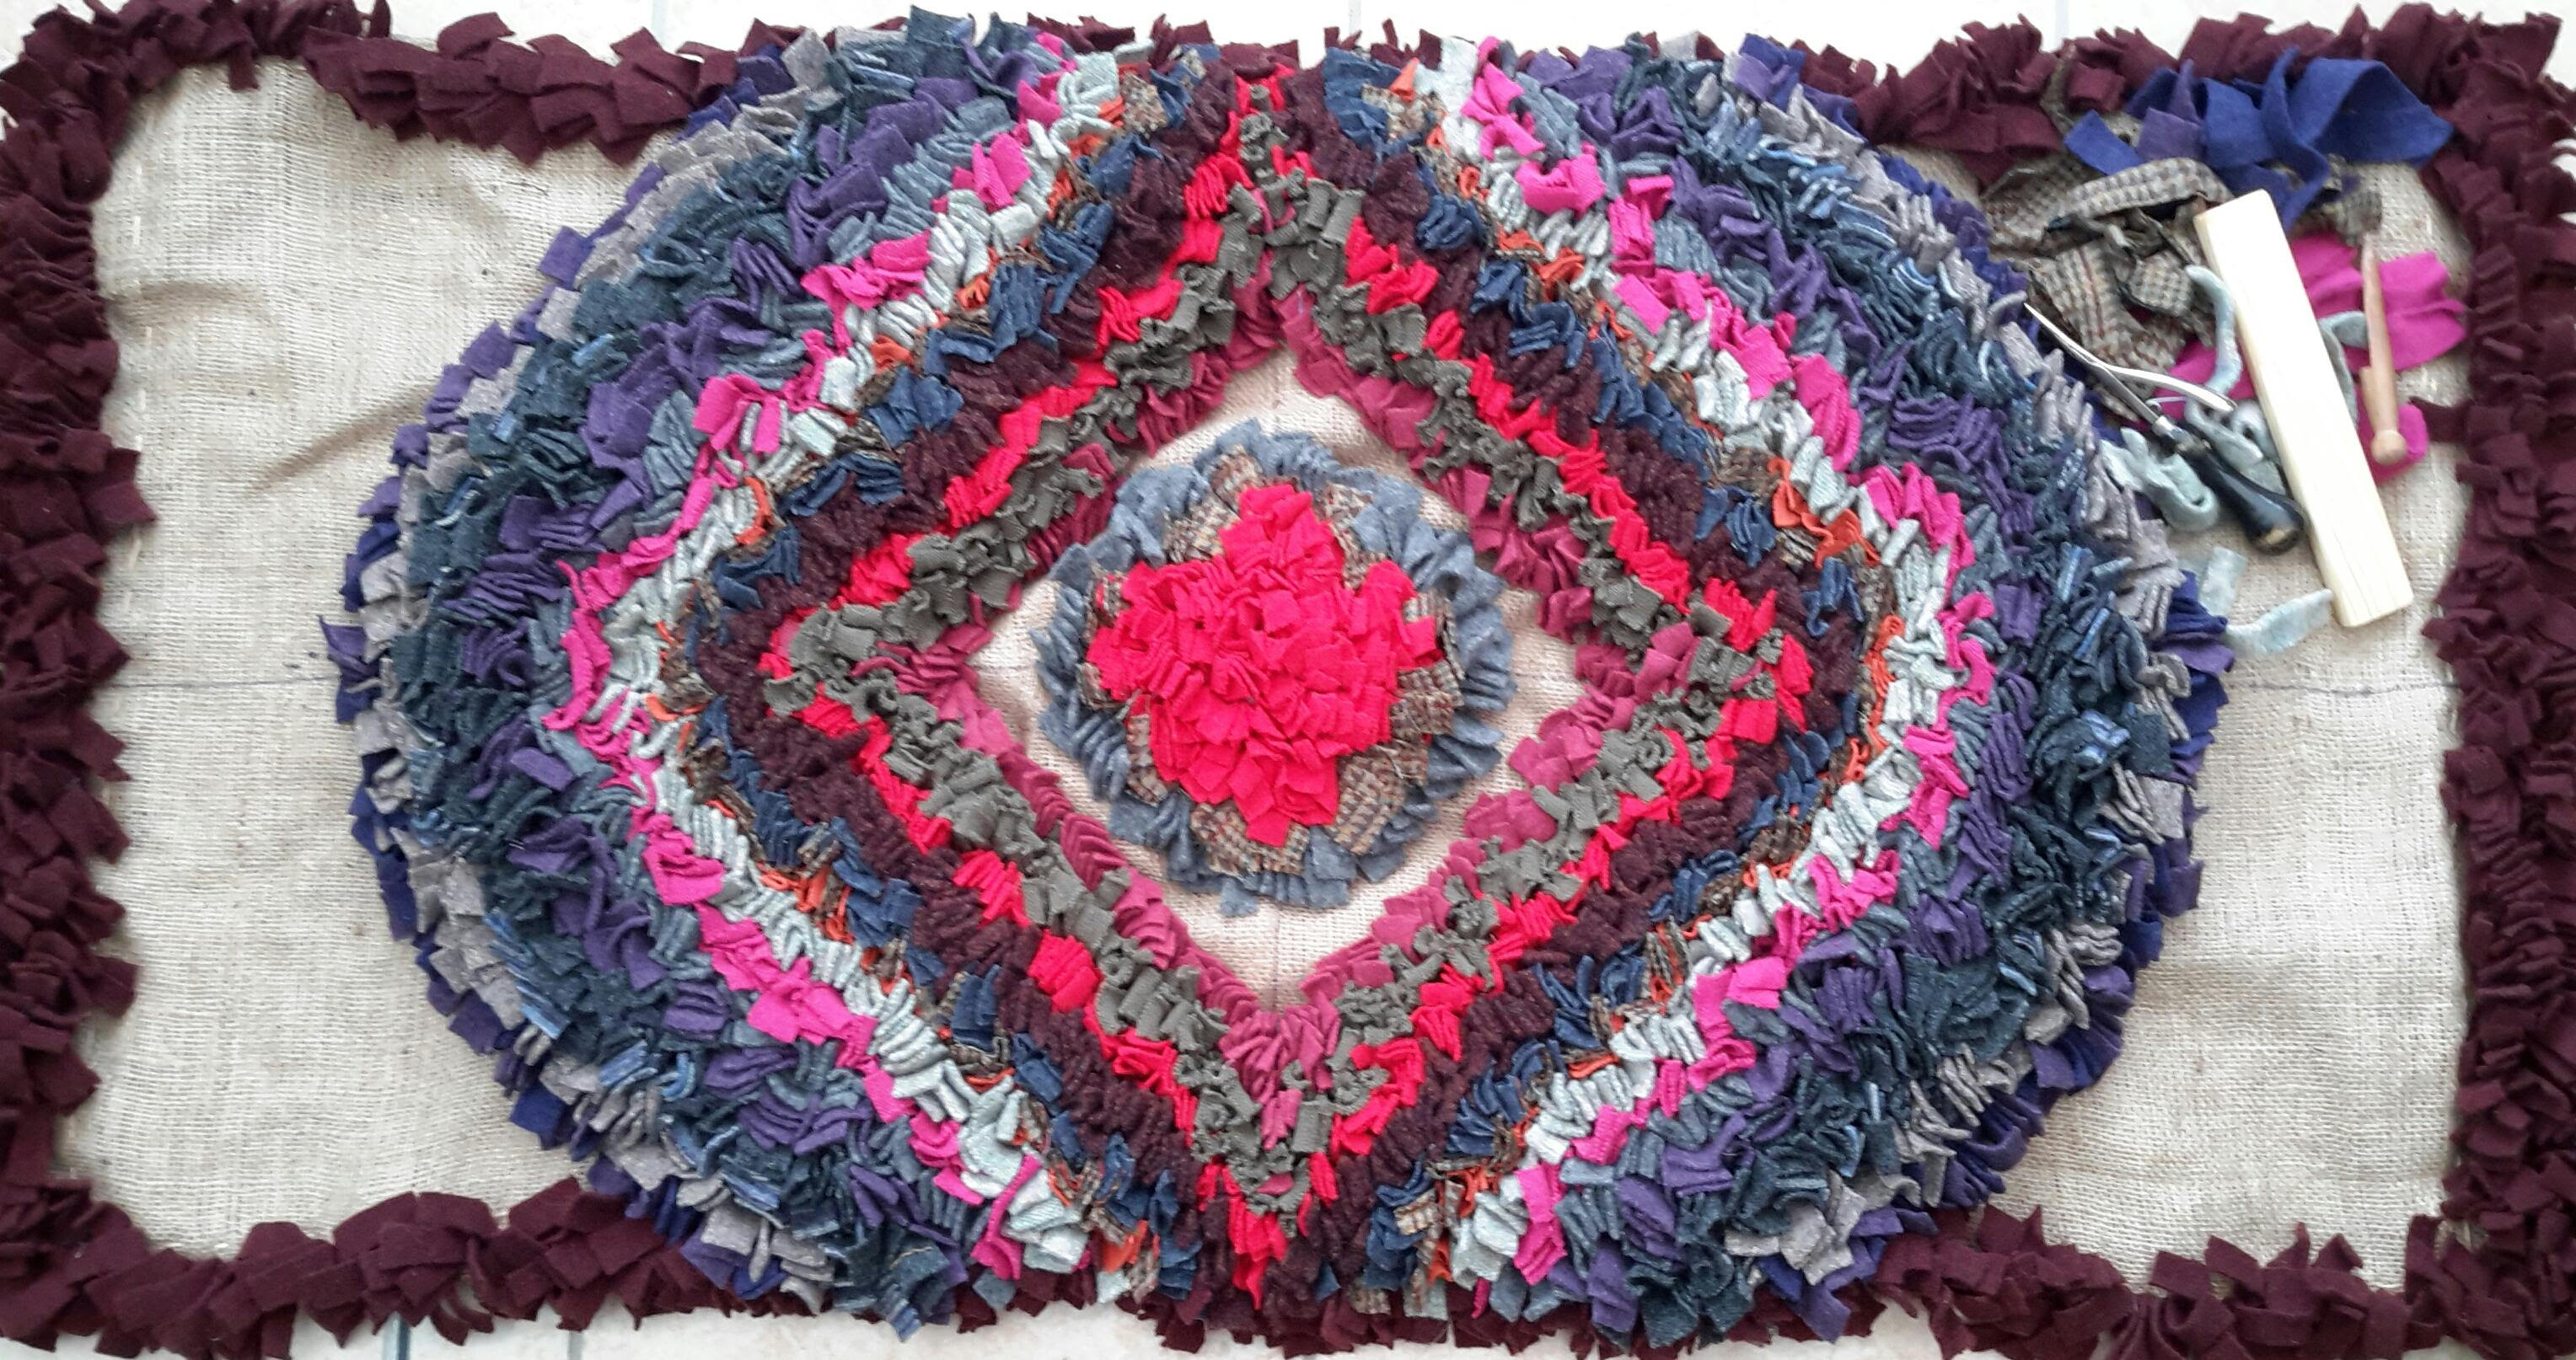 Geometric rag rug design by Stephanie Gaston made using recycled woollen jumpers